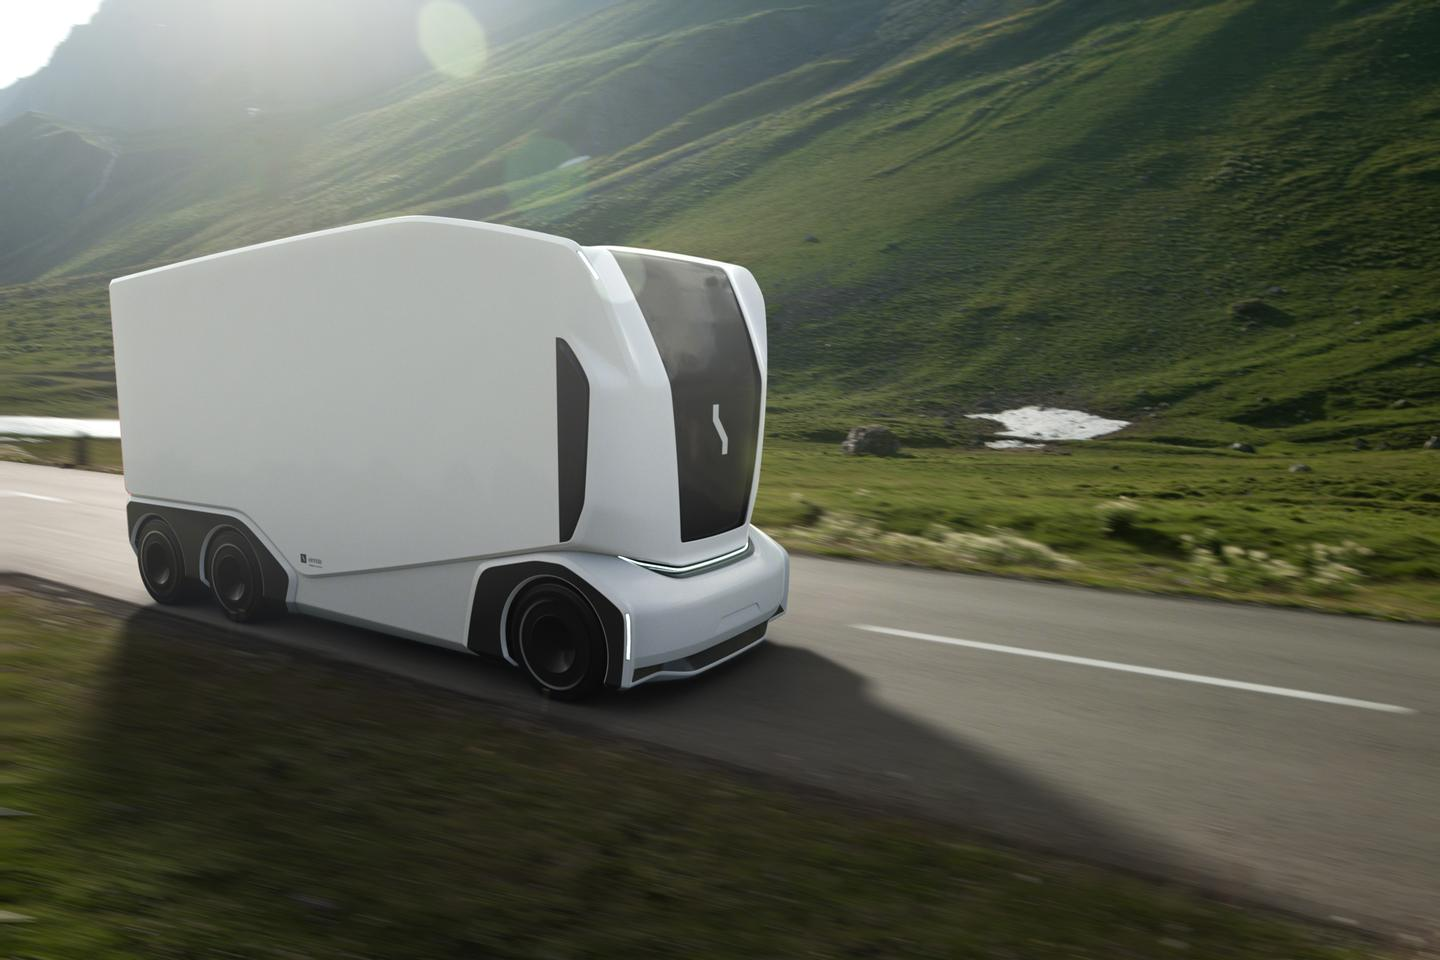 Einride has redesigned its Pod autonomous electric freight truck, and has now opened reservations